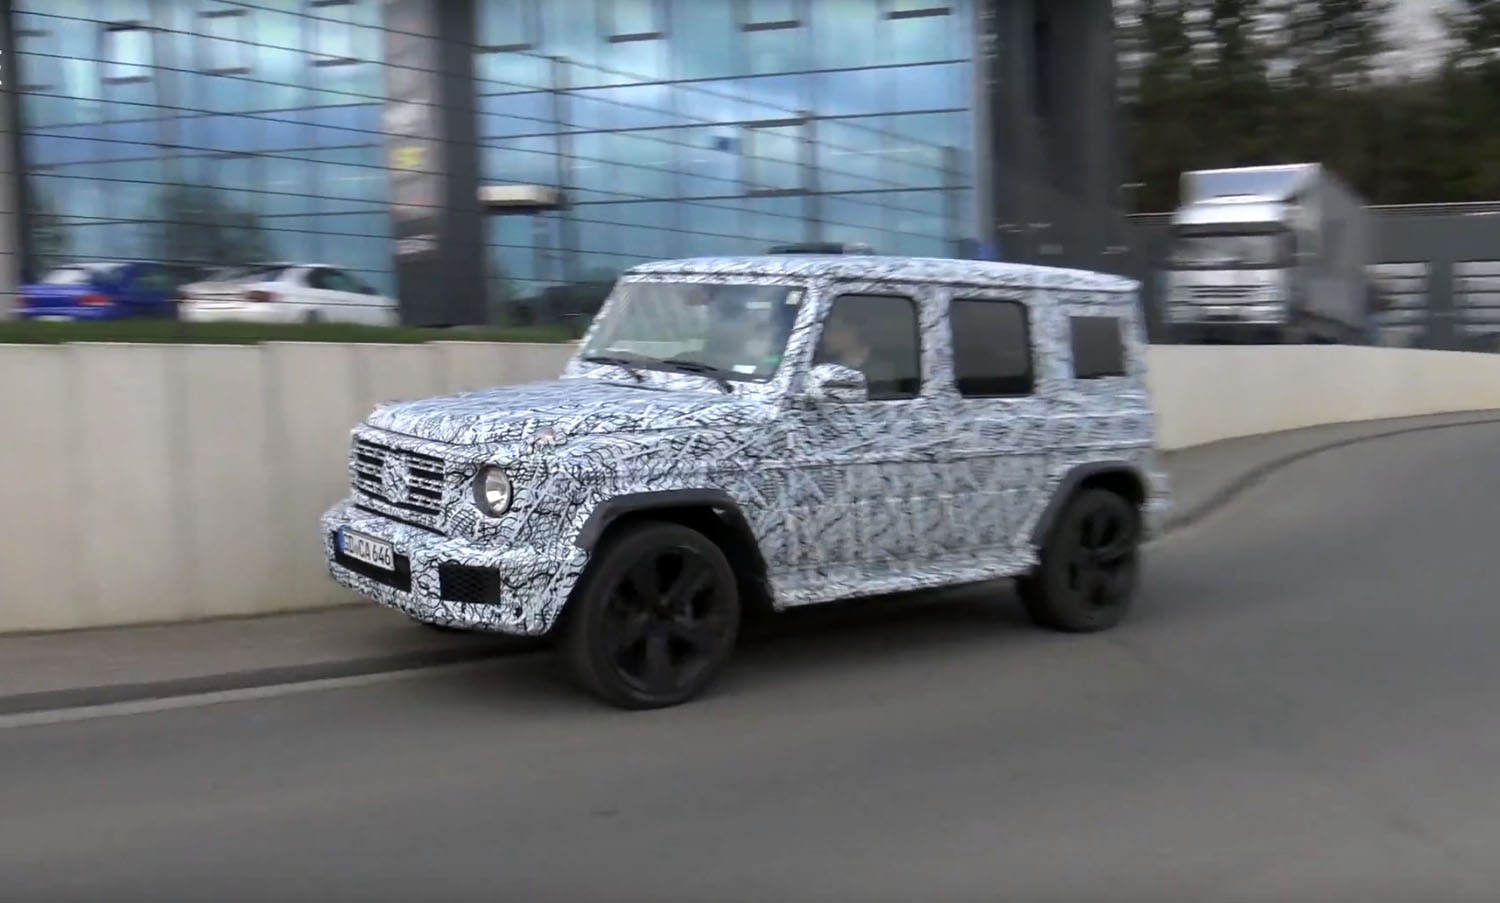 2019 mercedes benz g class technically goes off road near for Mercedes benz g class off road